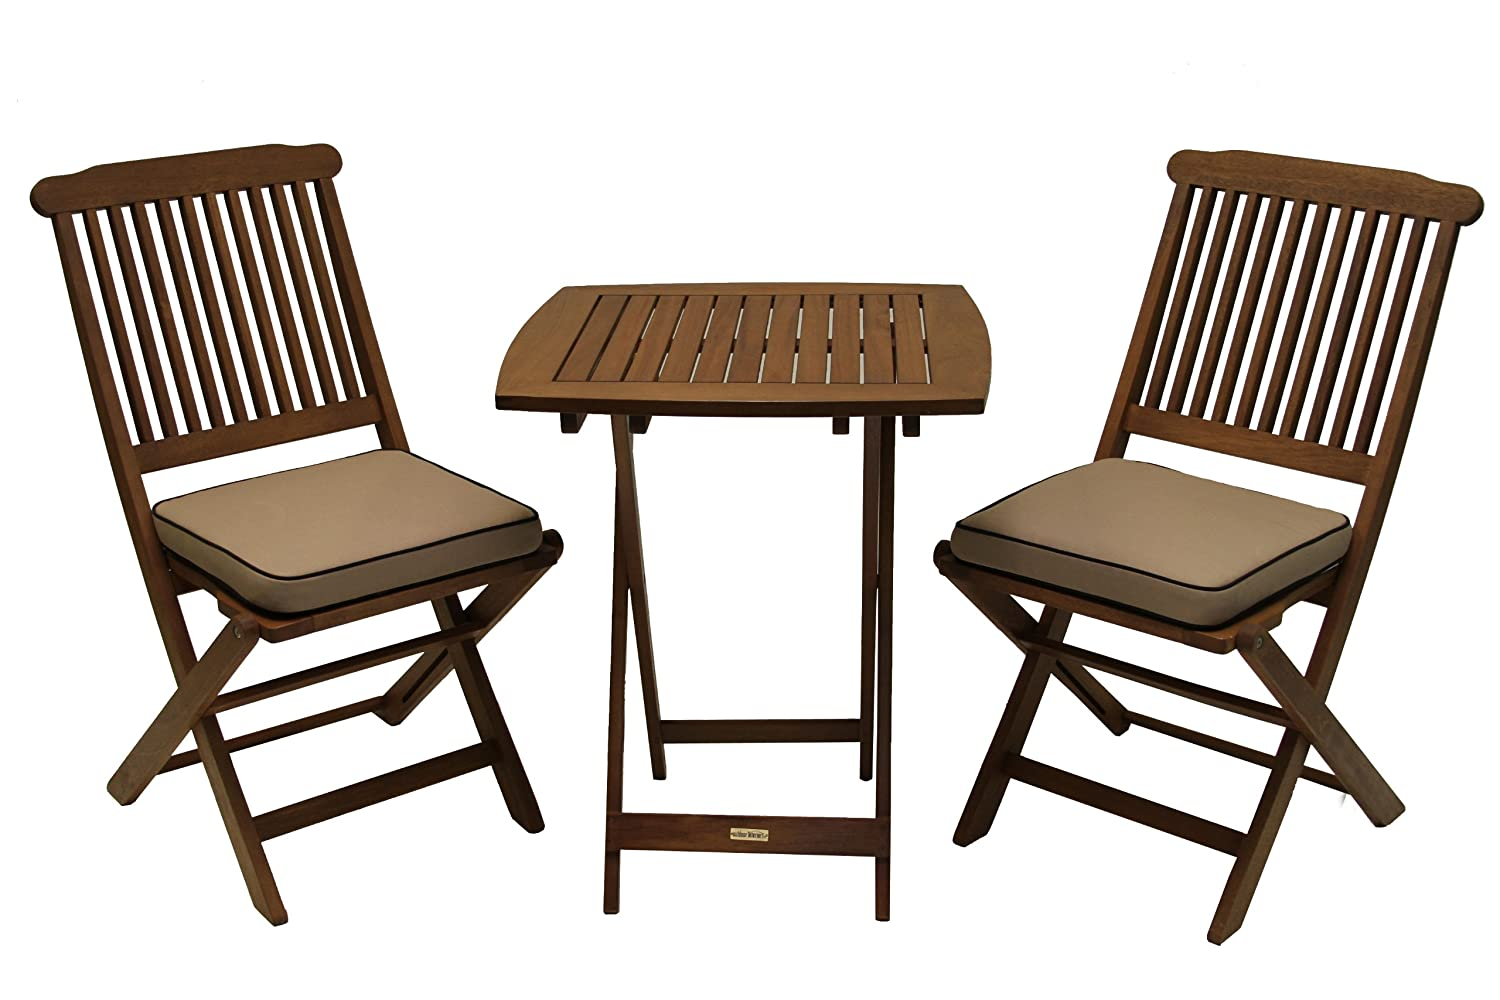 Amazon.com : Outdoor Interiors Eucalyptus 3 Piece Square Bistro Outdoor Furniture  Set   Includes Cushions : Outdoor And Patio Furniture Sets : Patio, ...